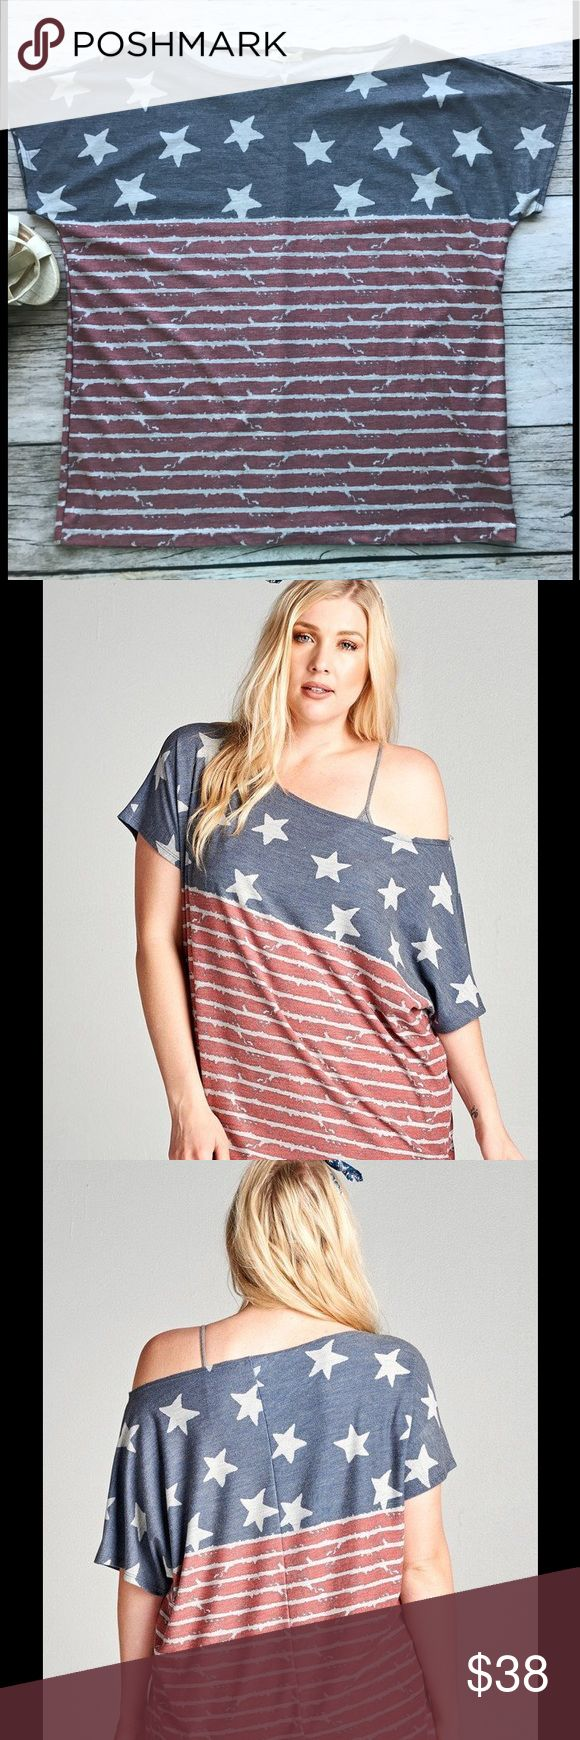 Plus Size July 4th Top Oversized top for a casual off-the-shoulder look. Must have for the 4th of July, and Labor Day weekend!       Fabric: French Terry  Content: 87% Polyester, 10% Rayon, 3% Spandex  Made In: USA mockingbird + poppy Tops